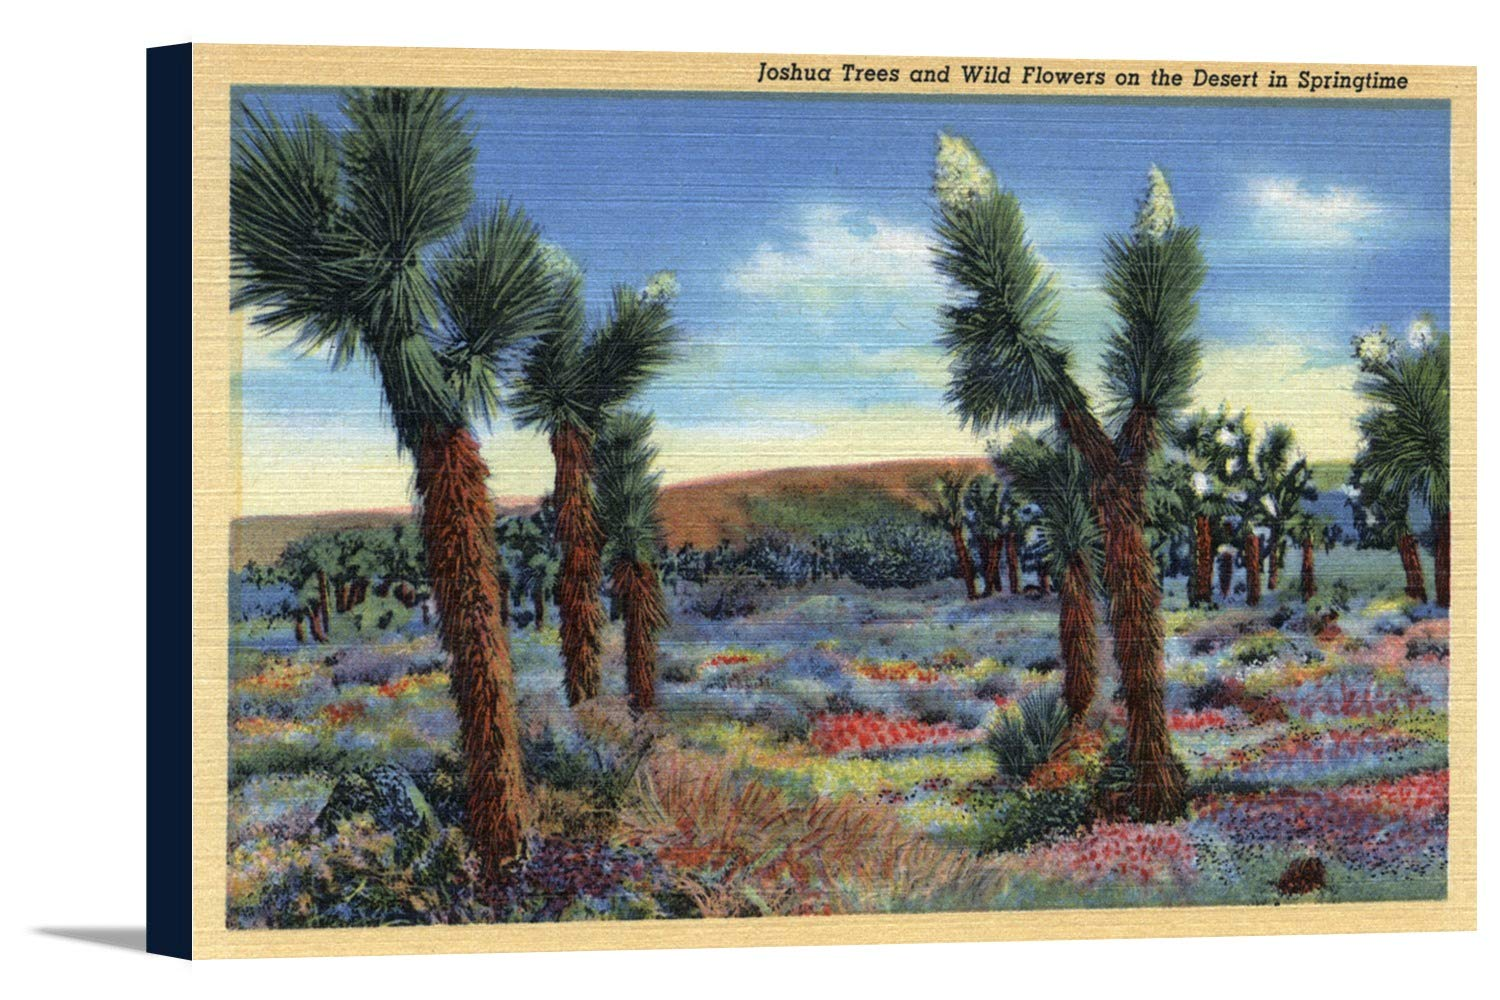 Joshua Trees and Desert Wild花ビュー 36 x 22 5/8 Gallery Canvas LANT-3P-SC-10219-24x36 36 x 22 5/8 Gallery Canvas  B0184ARE8S